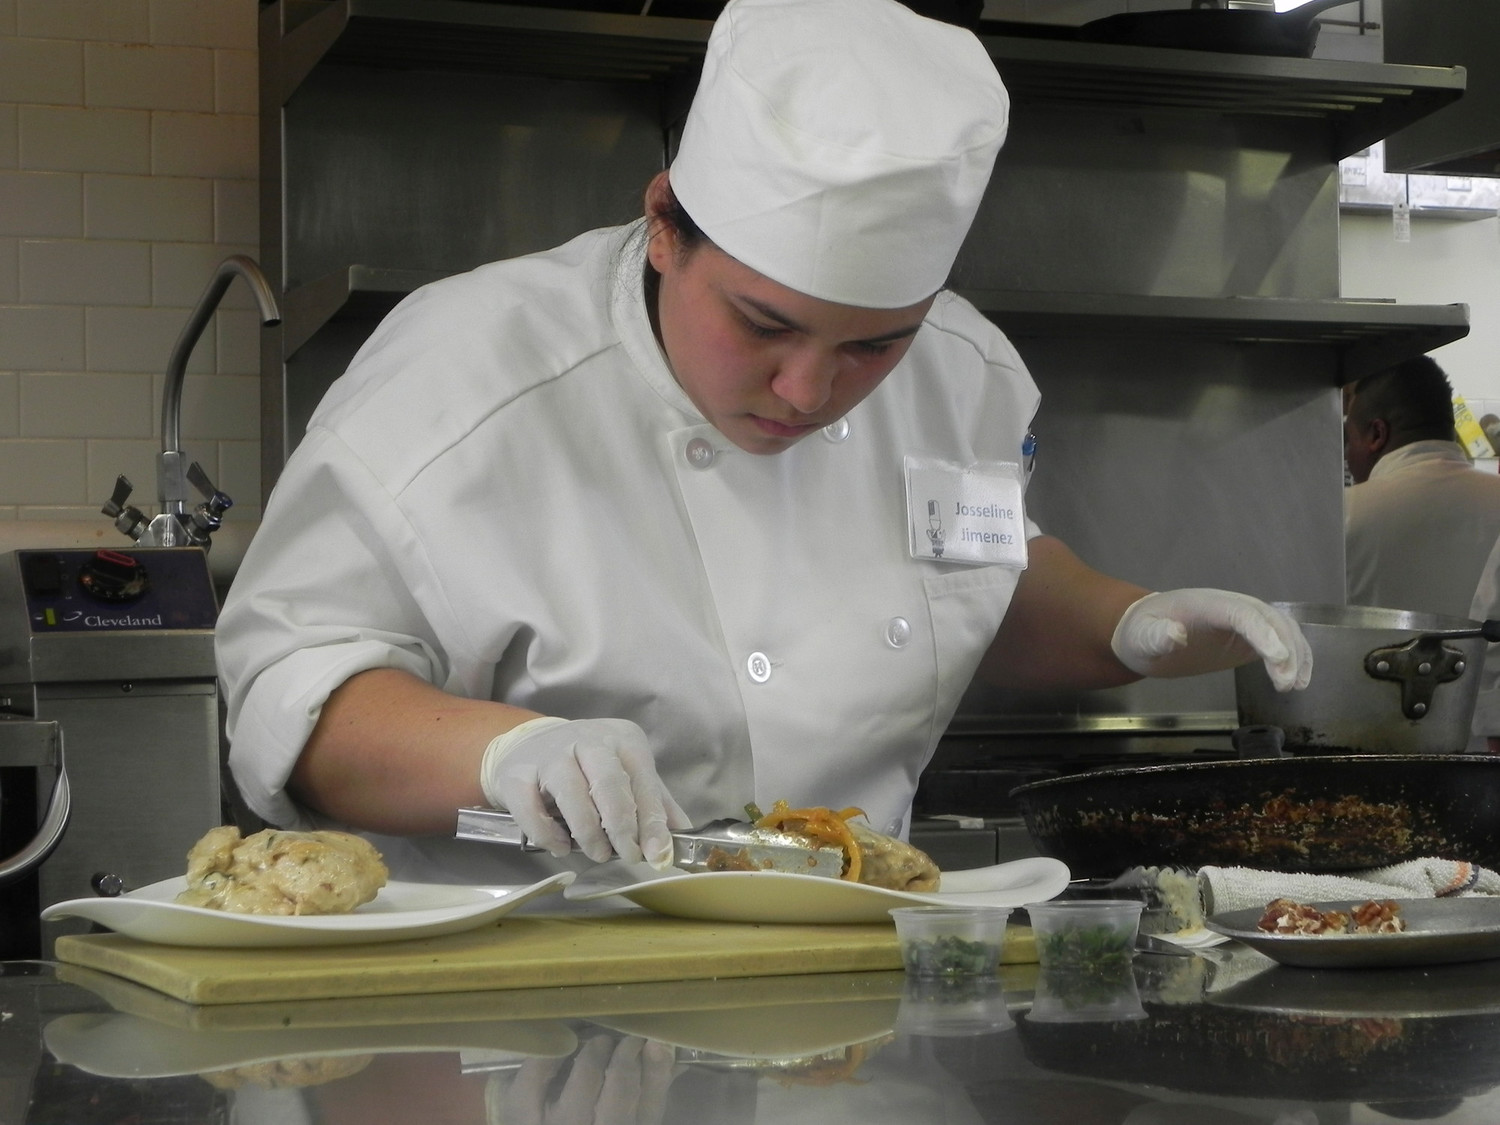 Three years ago, as a Lawrence High School senior, Josseline Jimenez competed for a culinary scholarship, above. Now she is a graduate of Monroe College who excelled academically majoring in hospitality management.